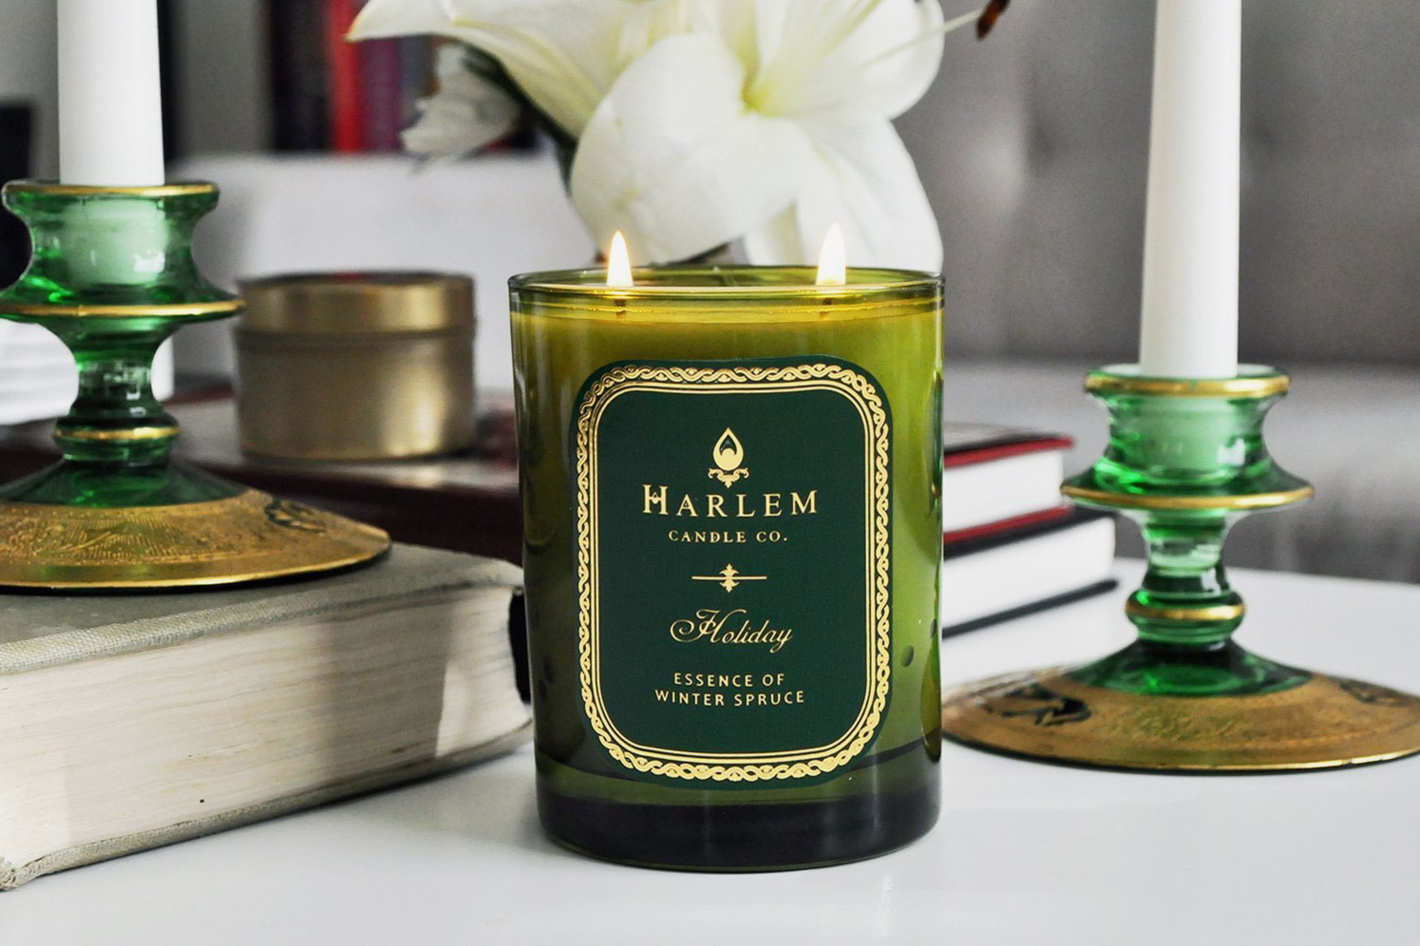 Harlem Candle Company Holiday Luxury Candle